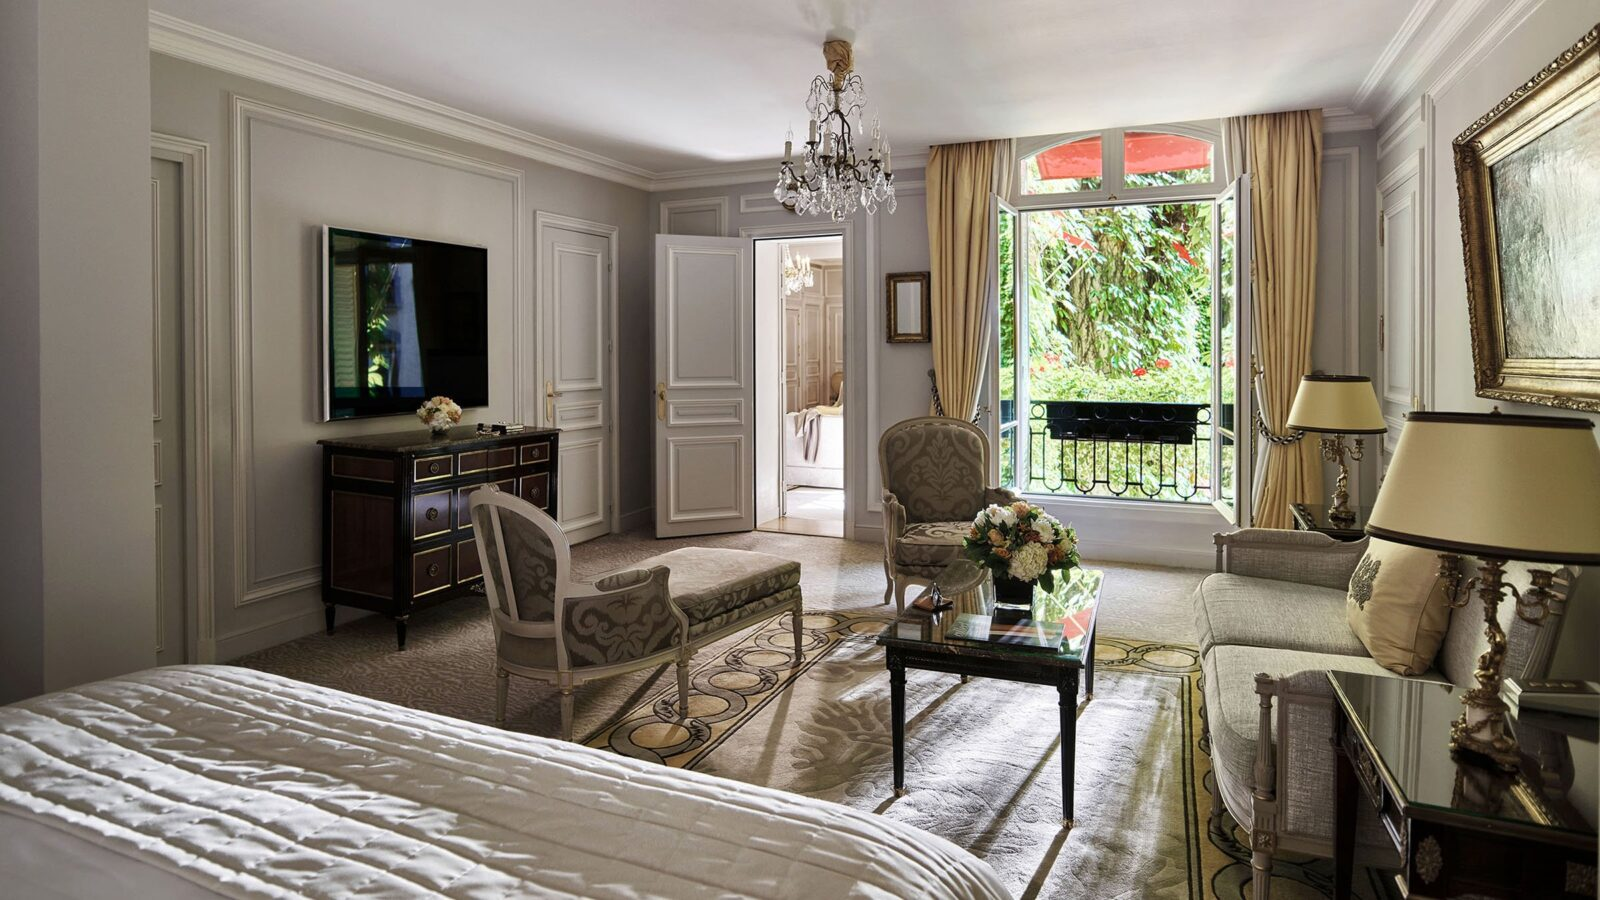 Crafting your home in Paris